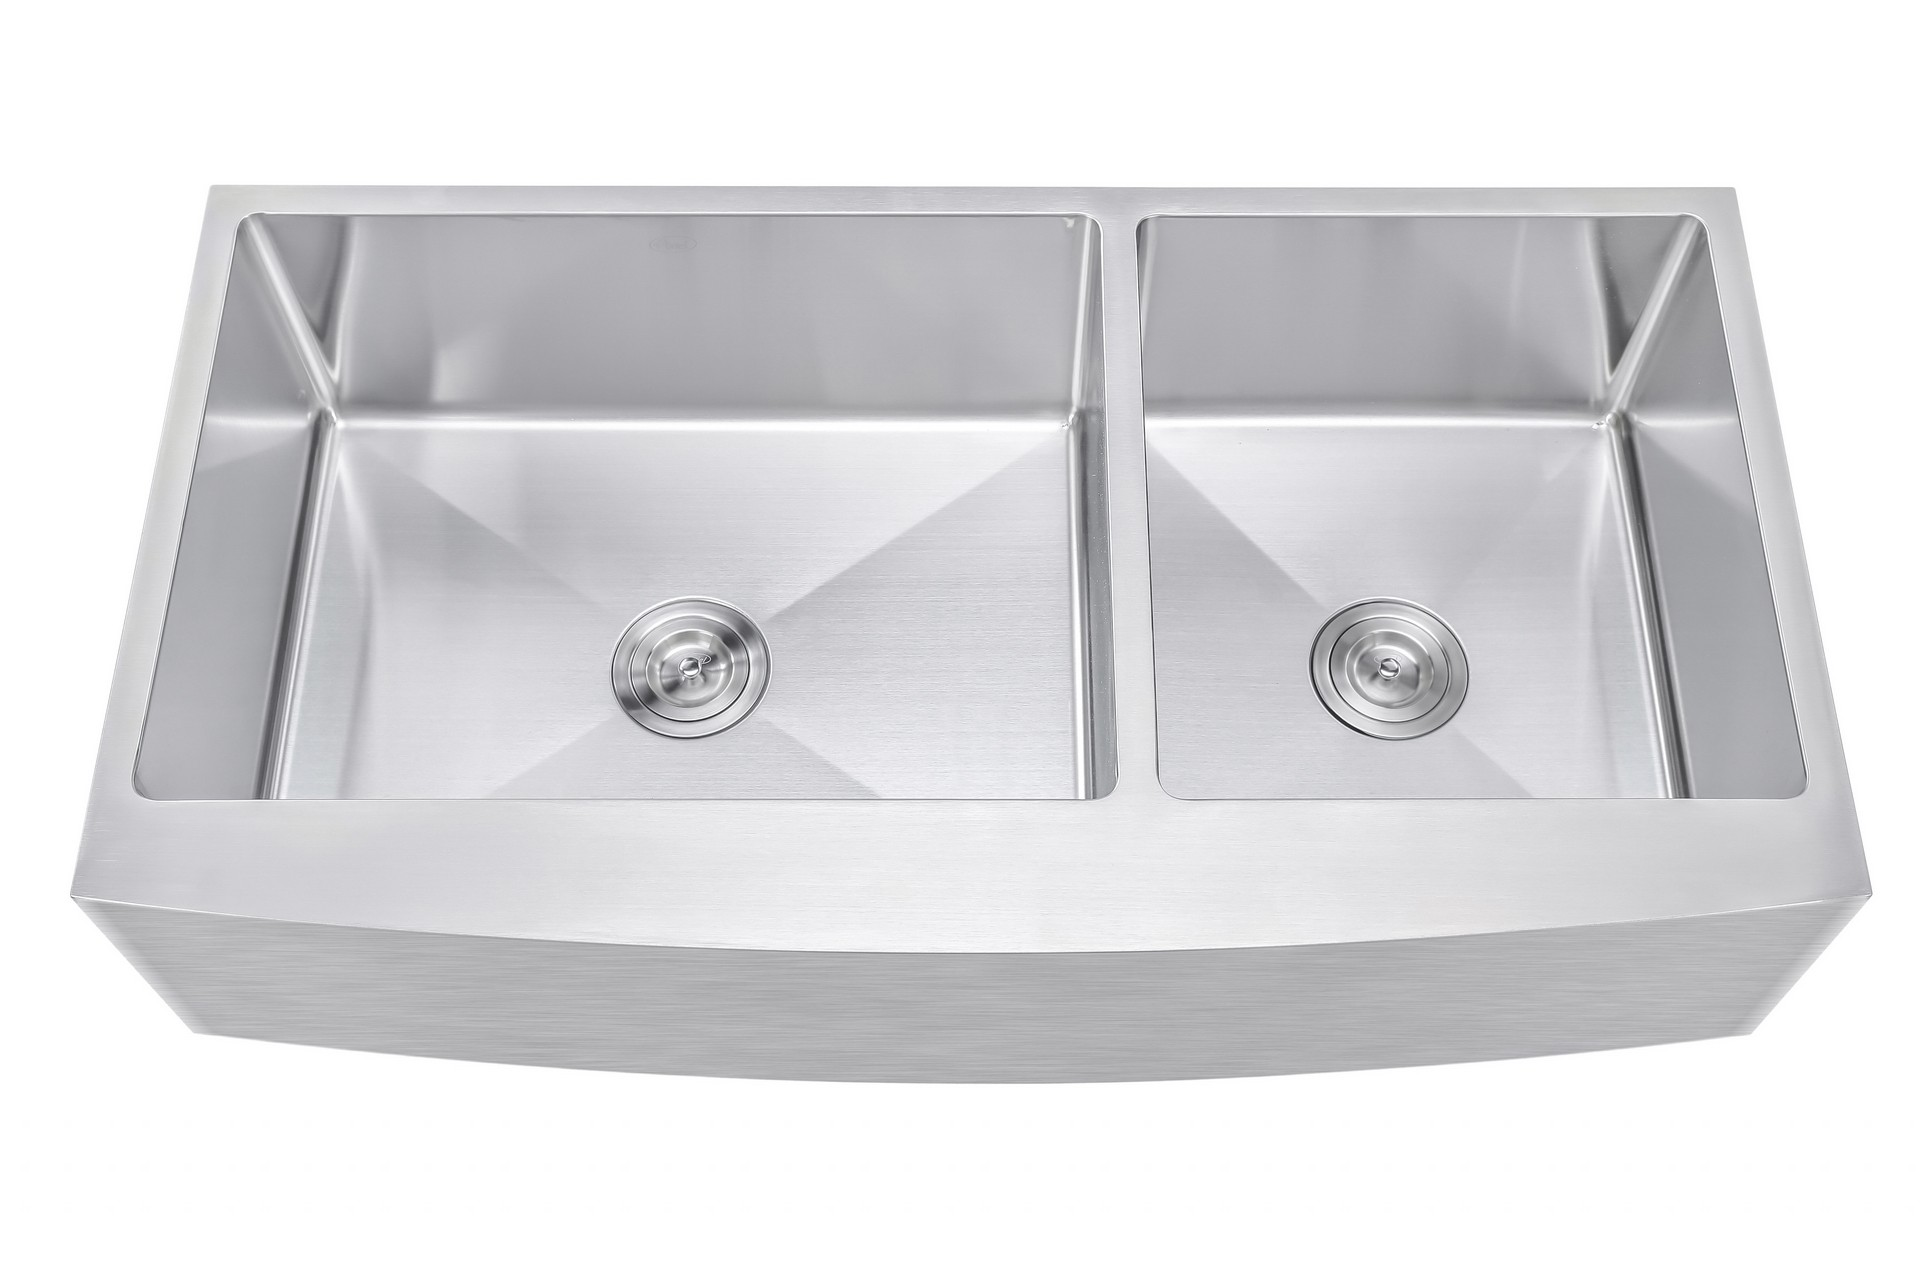 ariel 42 inch 60 40 offset double bowl farmhouse apron front stainless steel kitchen sink   15mm radius coved corners ariel 42 inch 60 40 offset double bowl farmhouse apron front      rh   cbath com